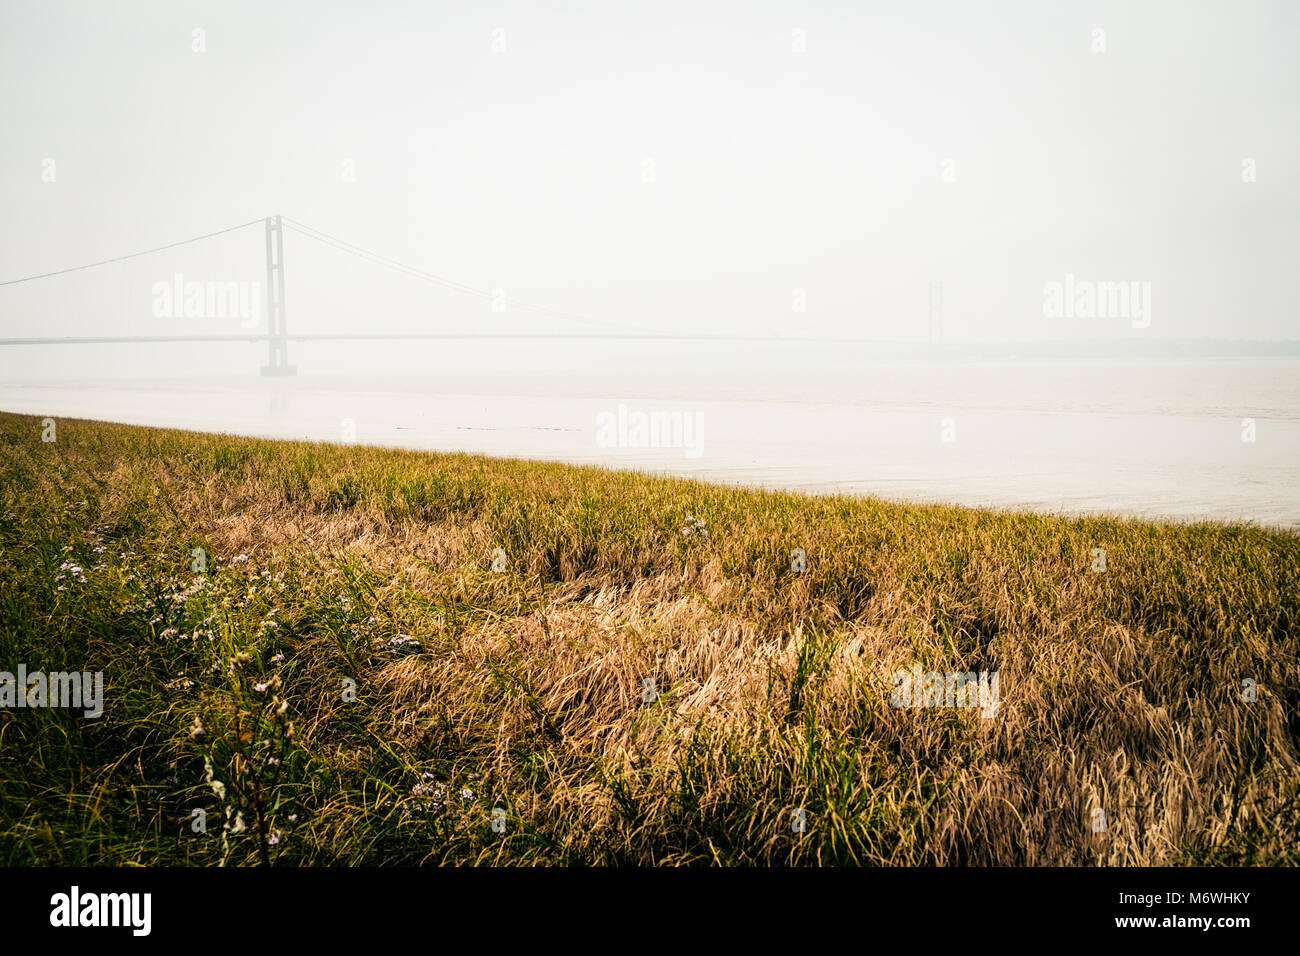 Humber bridge viewed from the south bank of the river at Barton upon Humber across a reed bed, atmospheric morning - Stock Image